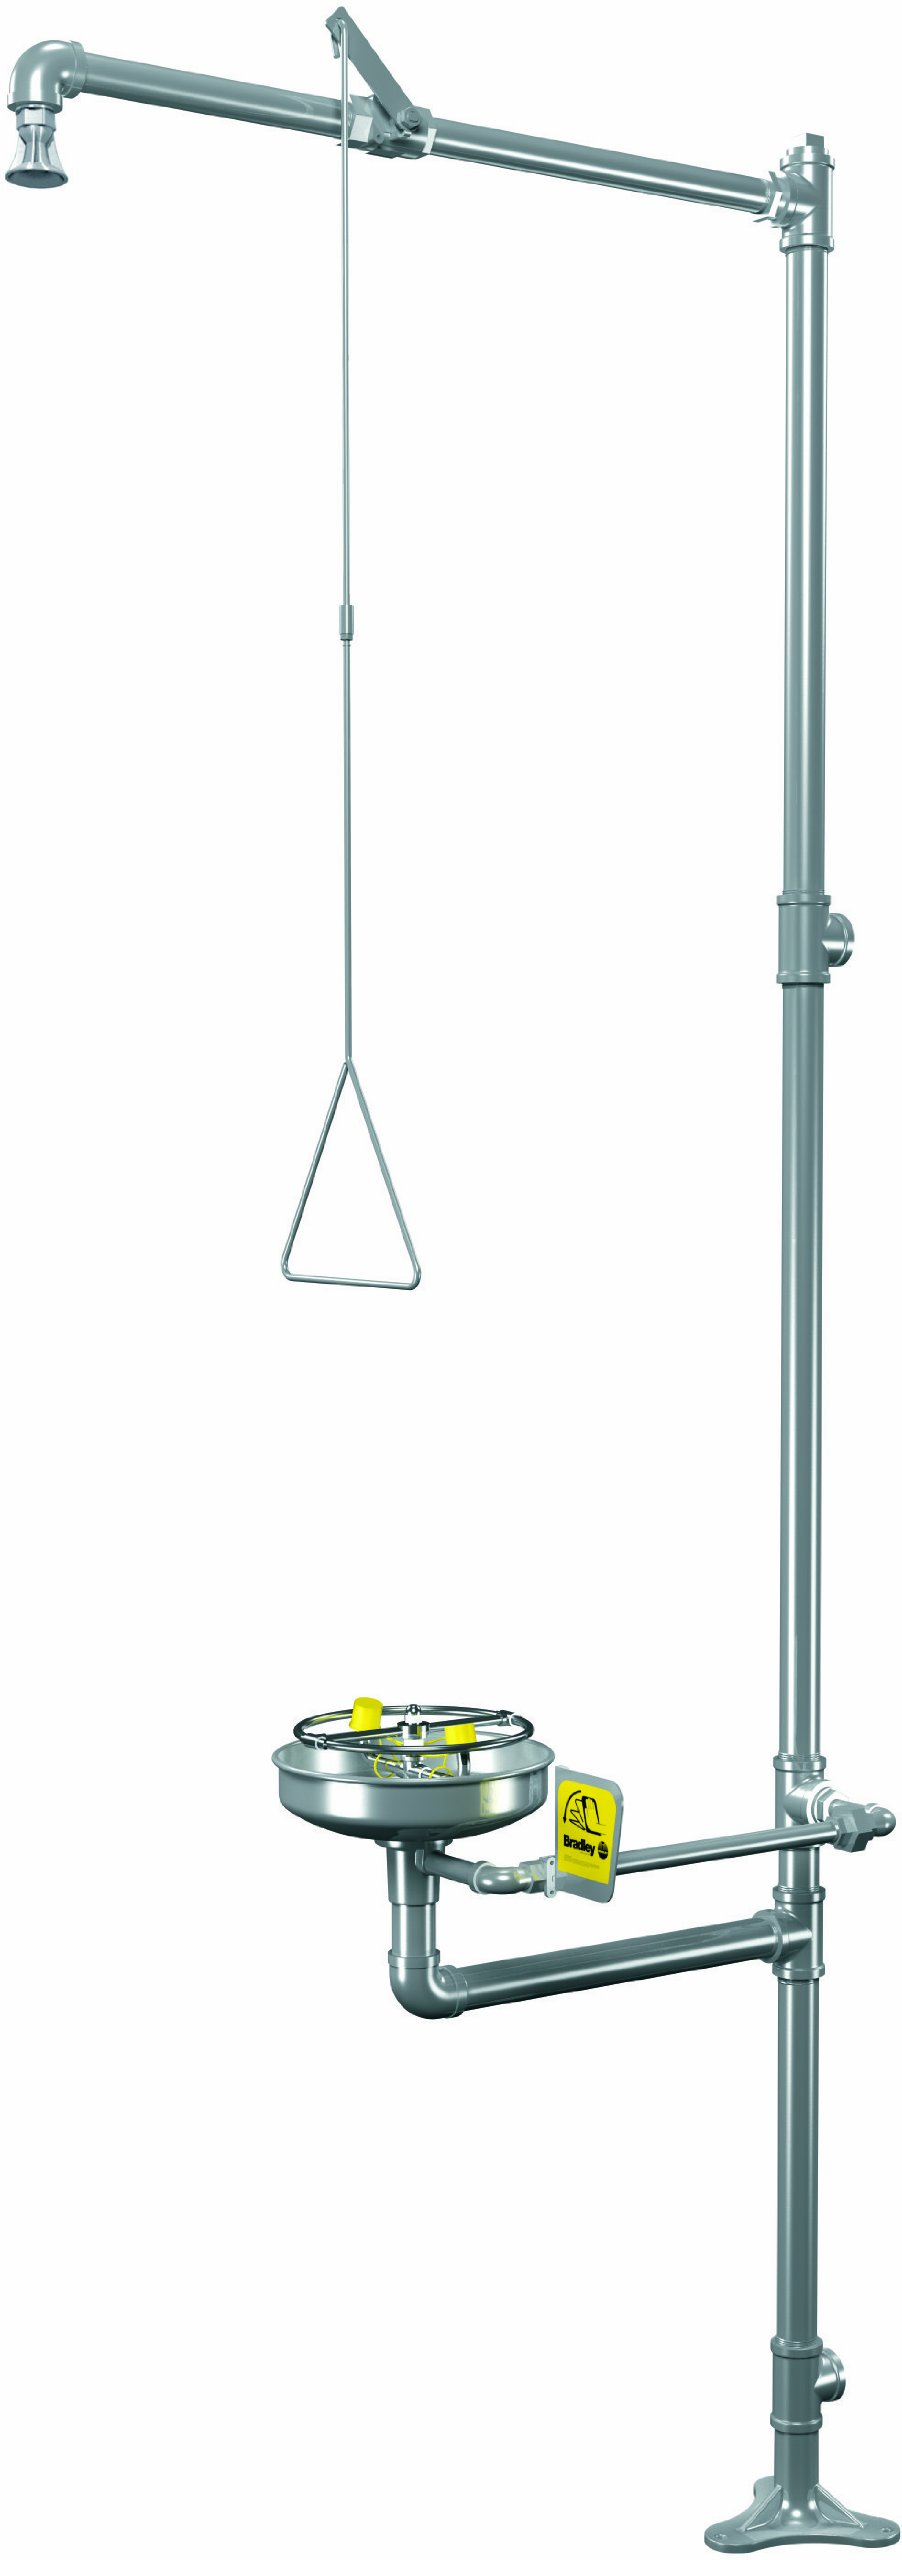 Bradley S19-310BFSS Stainless Steel 3 Spray Head Stainless Steel Barrier Free Combination Drench Shower and Eye/Face Wash Unit, 20 GPM, 10-3/4'' Width x 94-3/4'' Height x 34-3/8'' Depth, Yellow